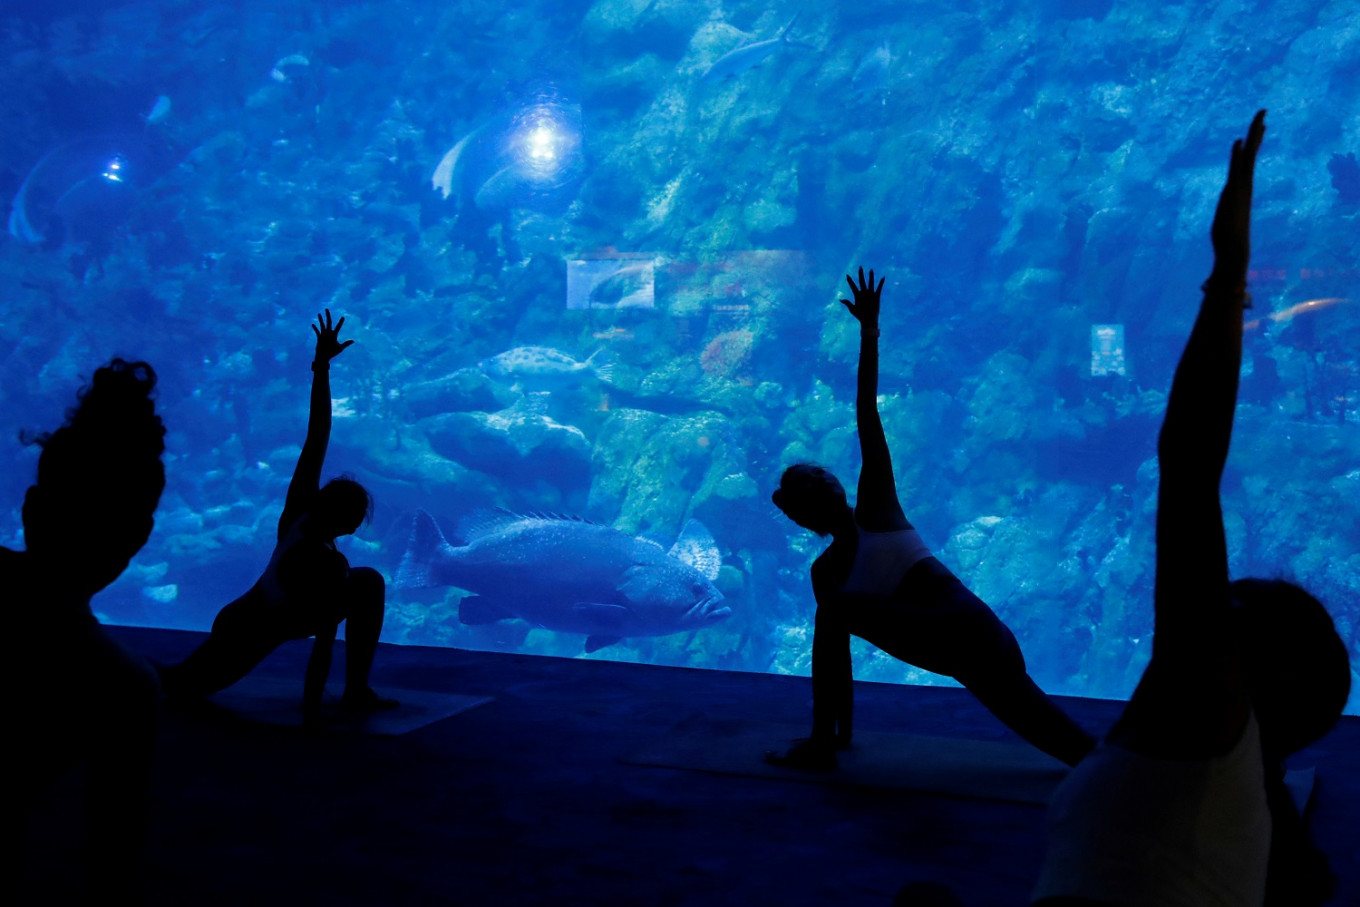 'Be one with the fish': Aquarium yoga among Hong Kong Ocean Park's new offerings